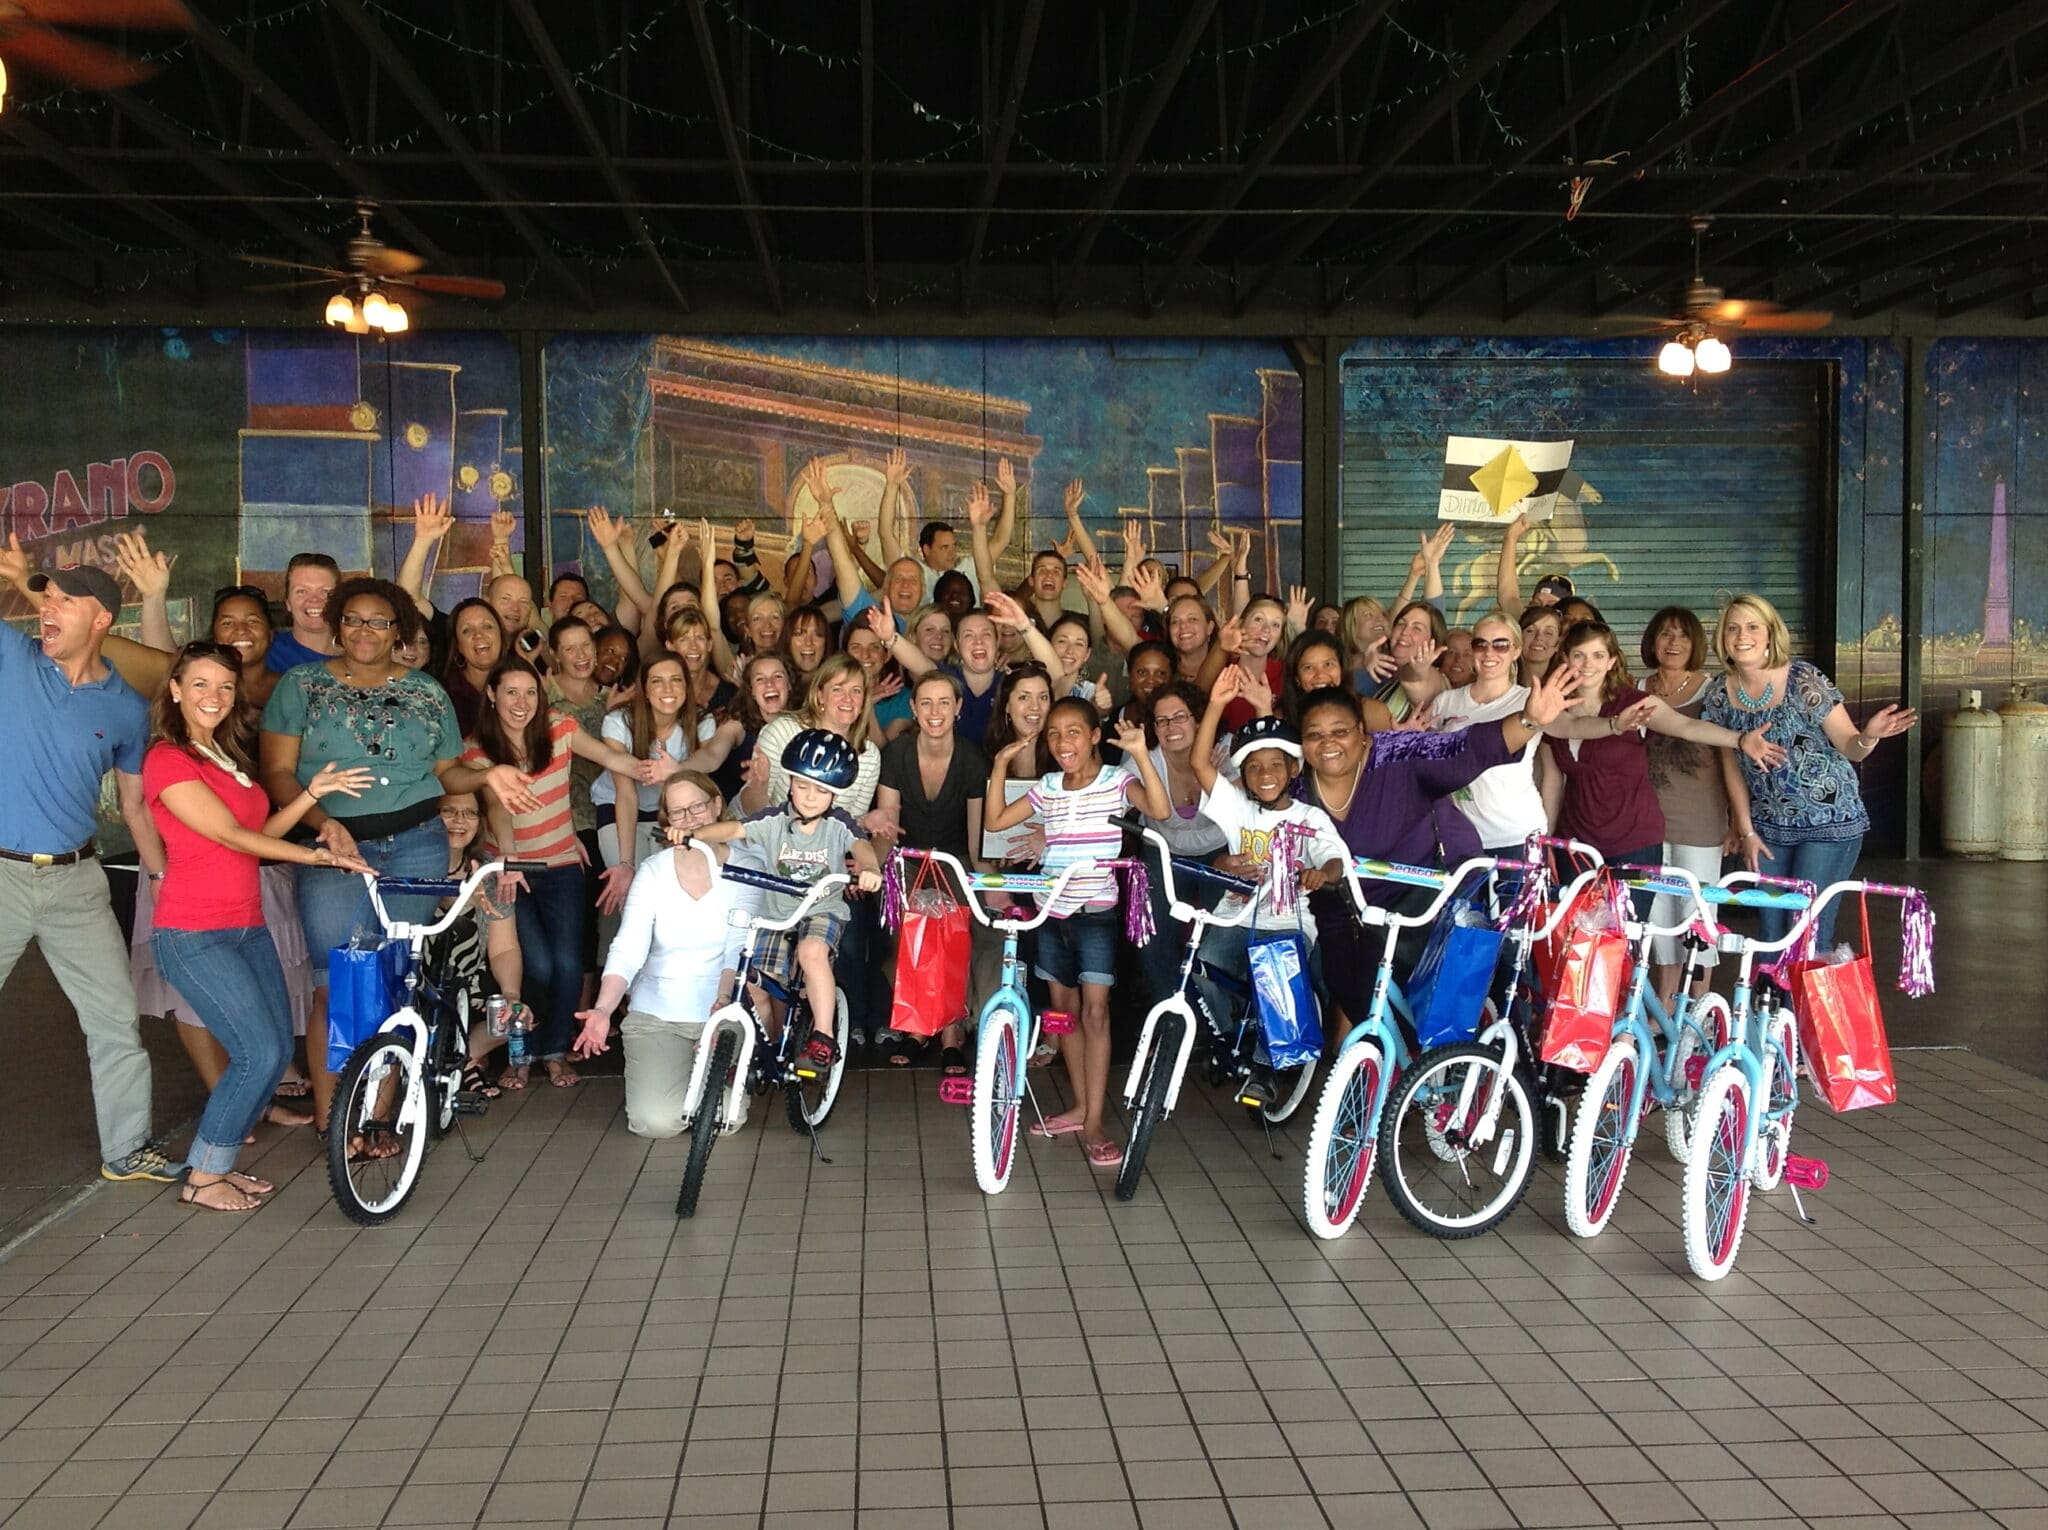 Chick-Fil-A Build-A-Bike in Atlanta, Georgia